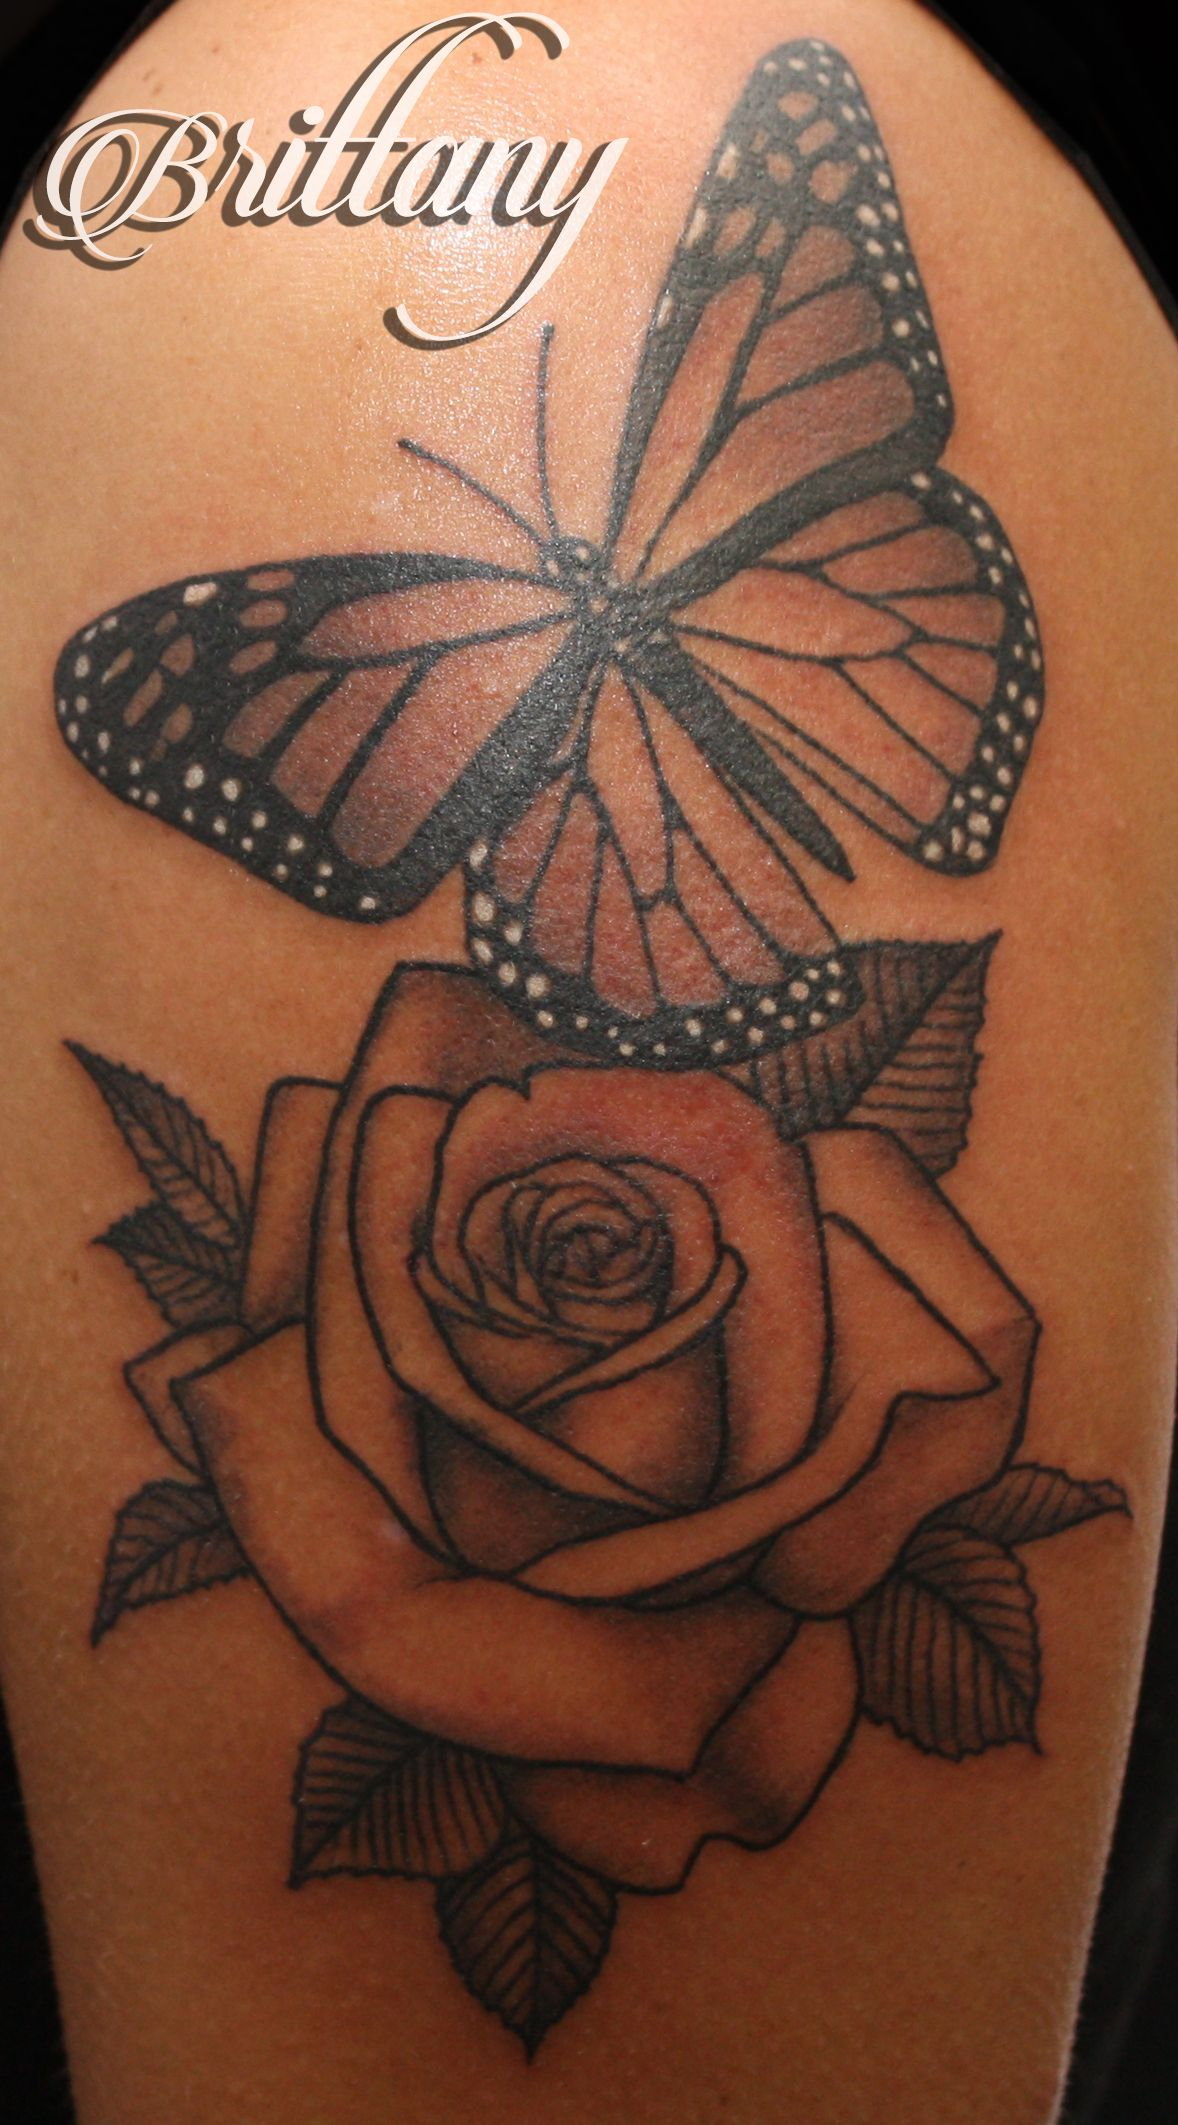 1b1316758 Butterfly rose tattoo monarch butterfly black and grey Skinny Boy Tattoo  Post Falls Idaho